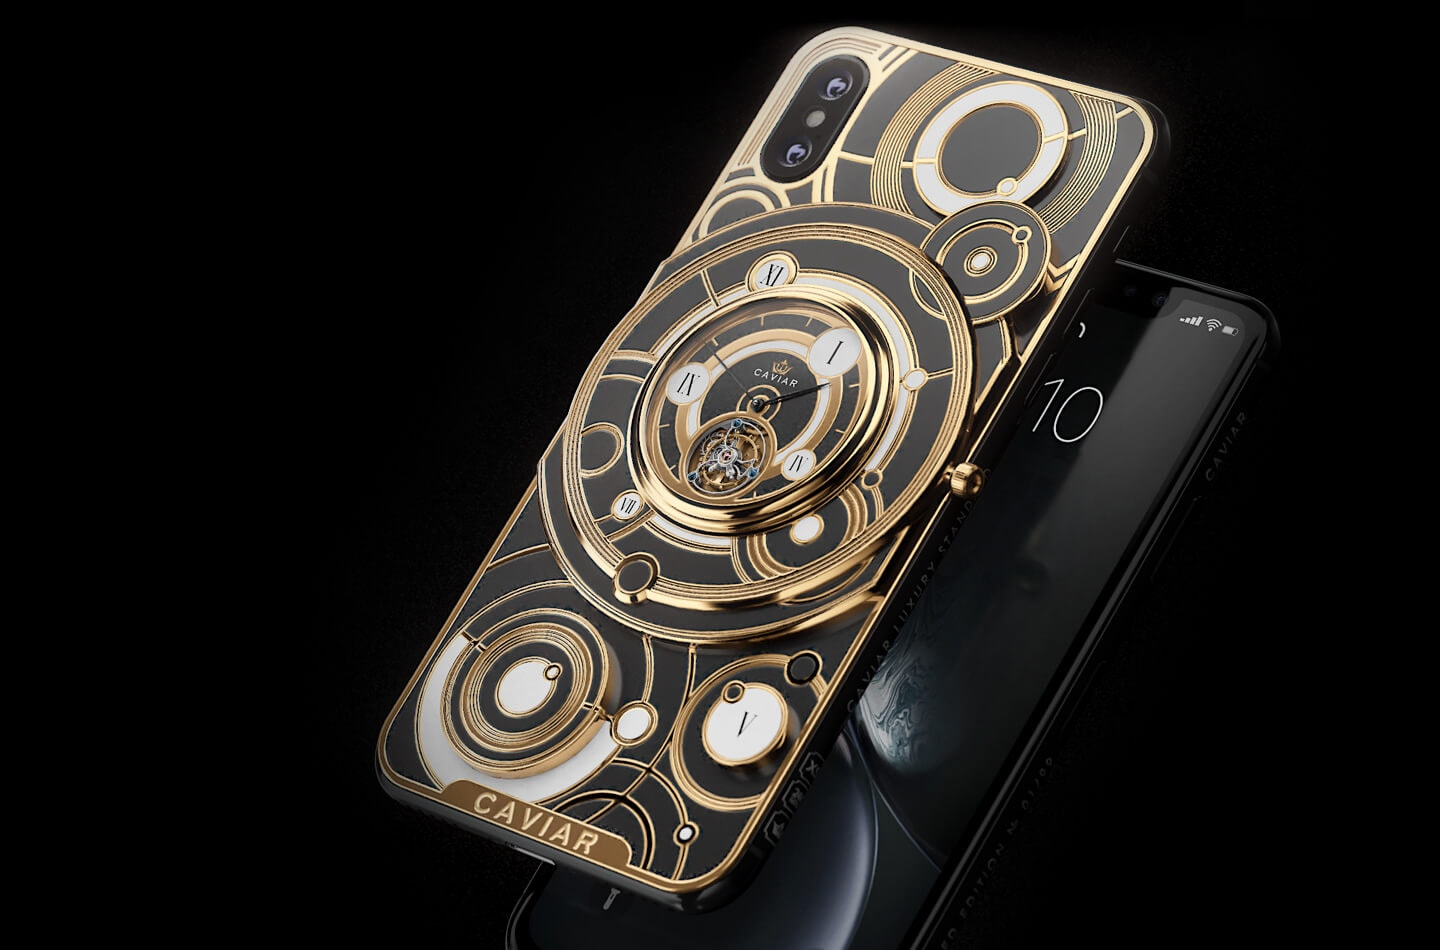 Opulent Custom iPhone XS Max Boasts its own Mechanical Watch